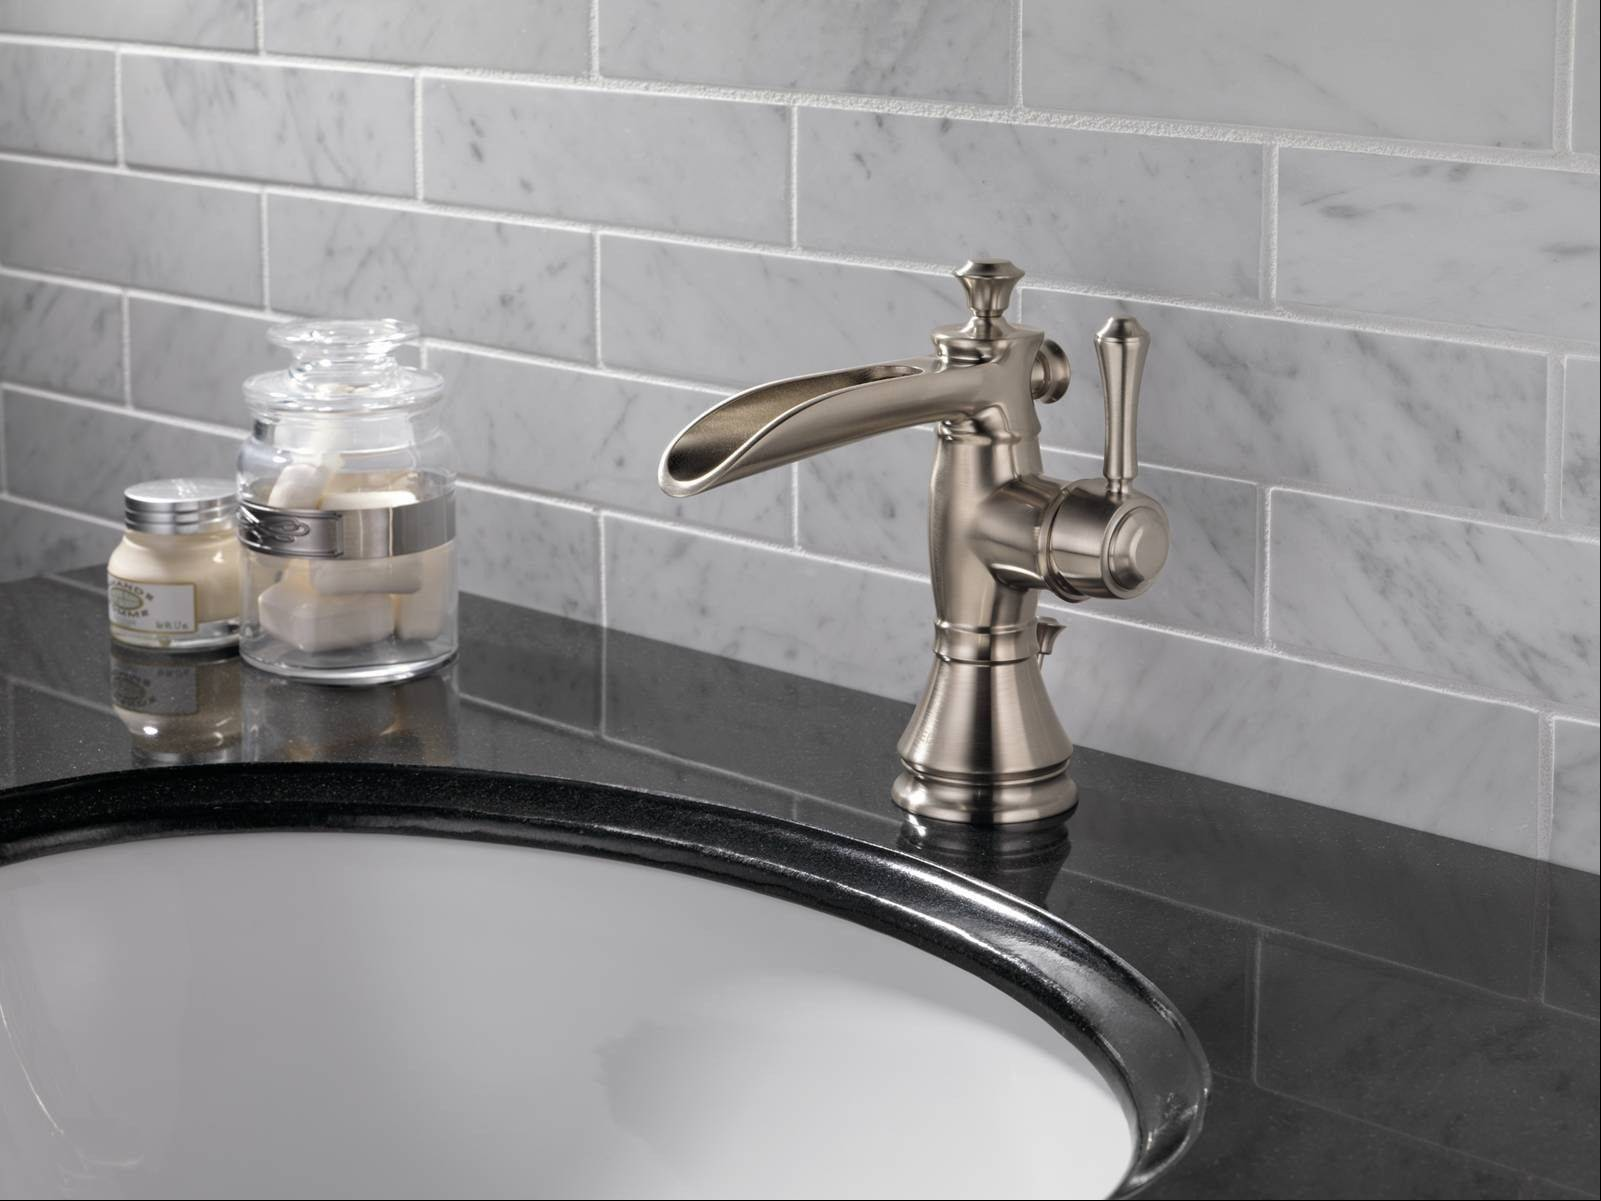 Delta's Cassidy with the open channel spout attracted attention at the recent Kitchen & Bath Industry Show.